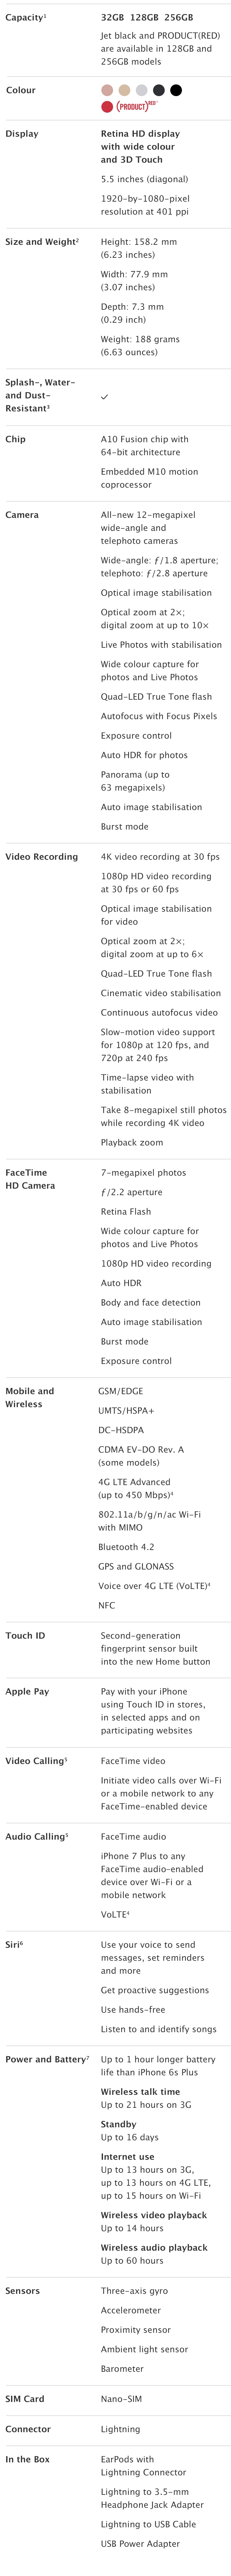 iPhone 7 Plus Specifications